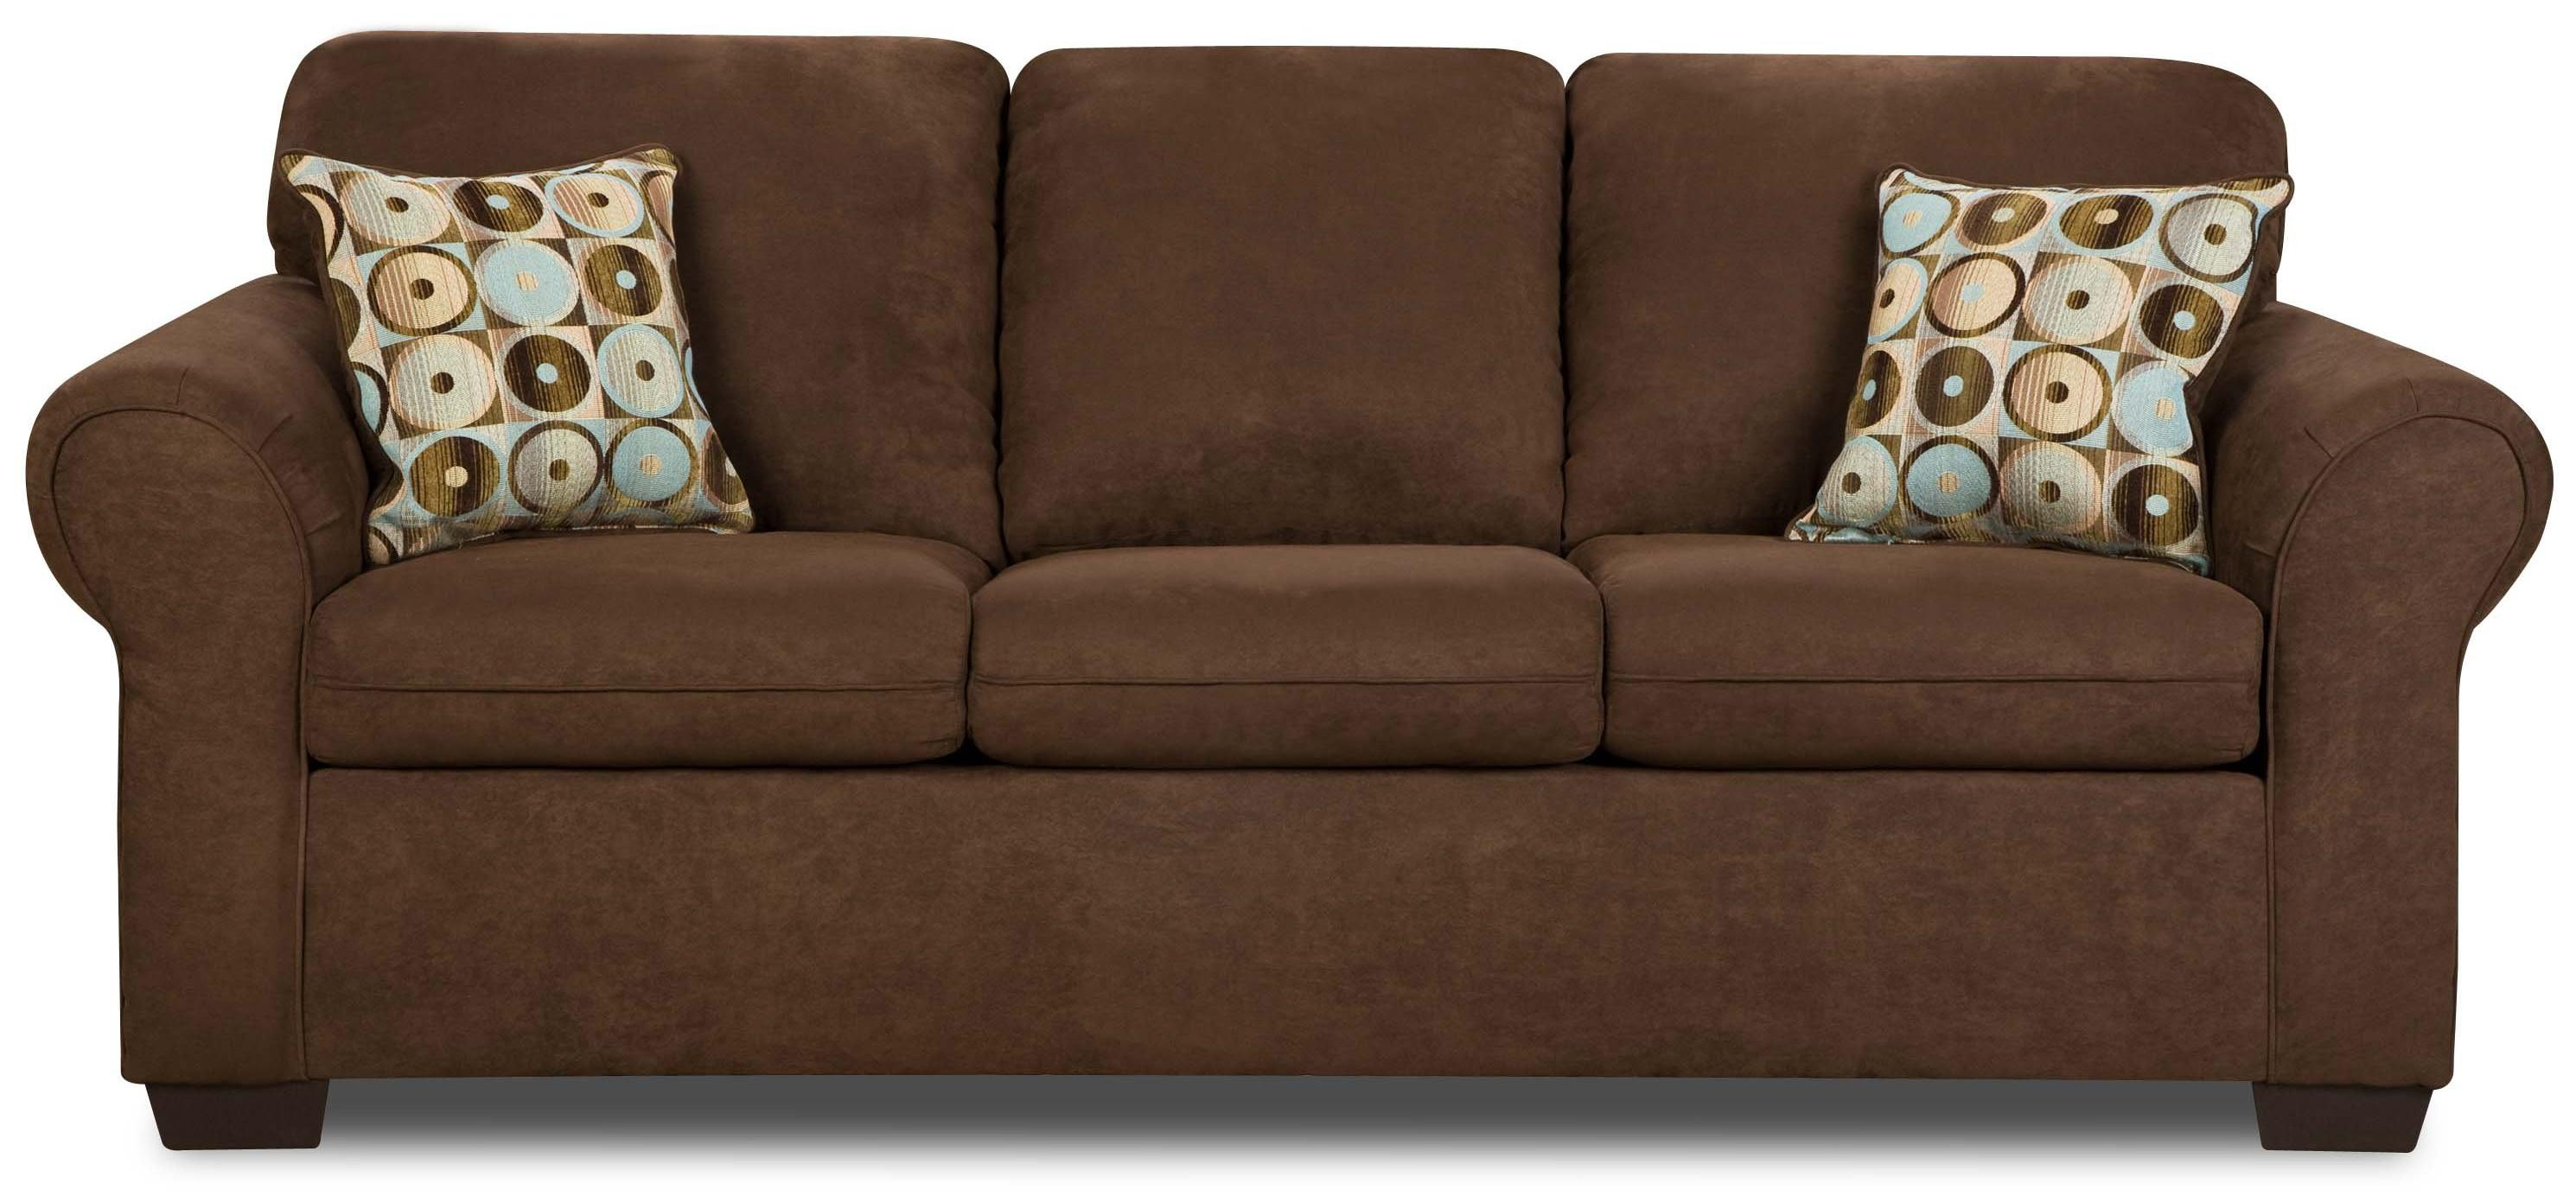 Simmons Upholstery 1640 Queen Sleeper Sofa - Item Number: 1640QueenSleeper-Chocolate